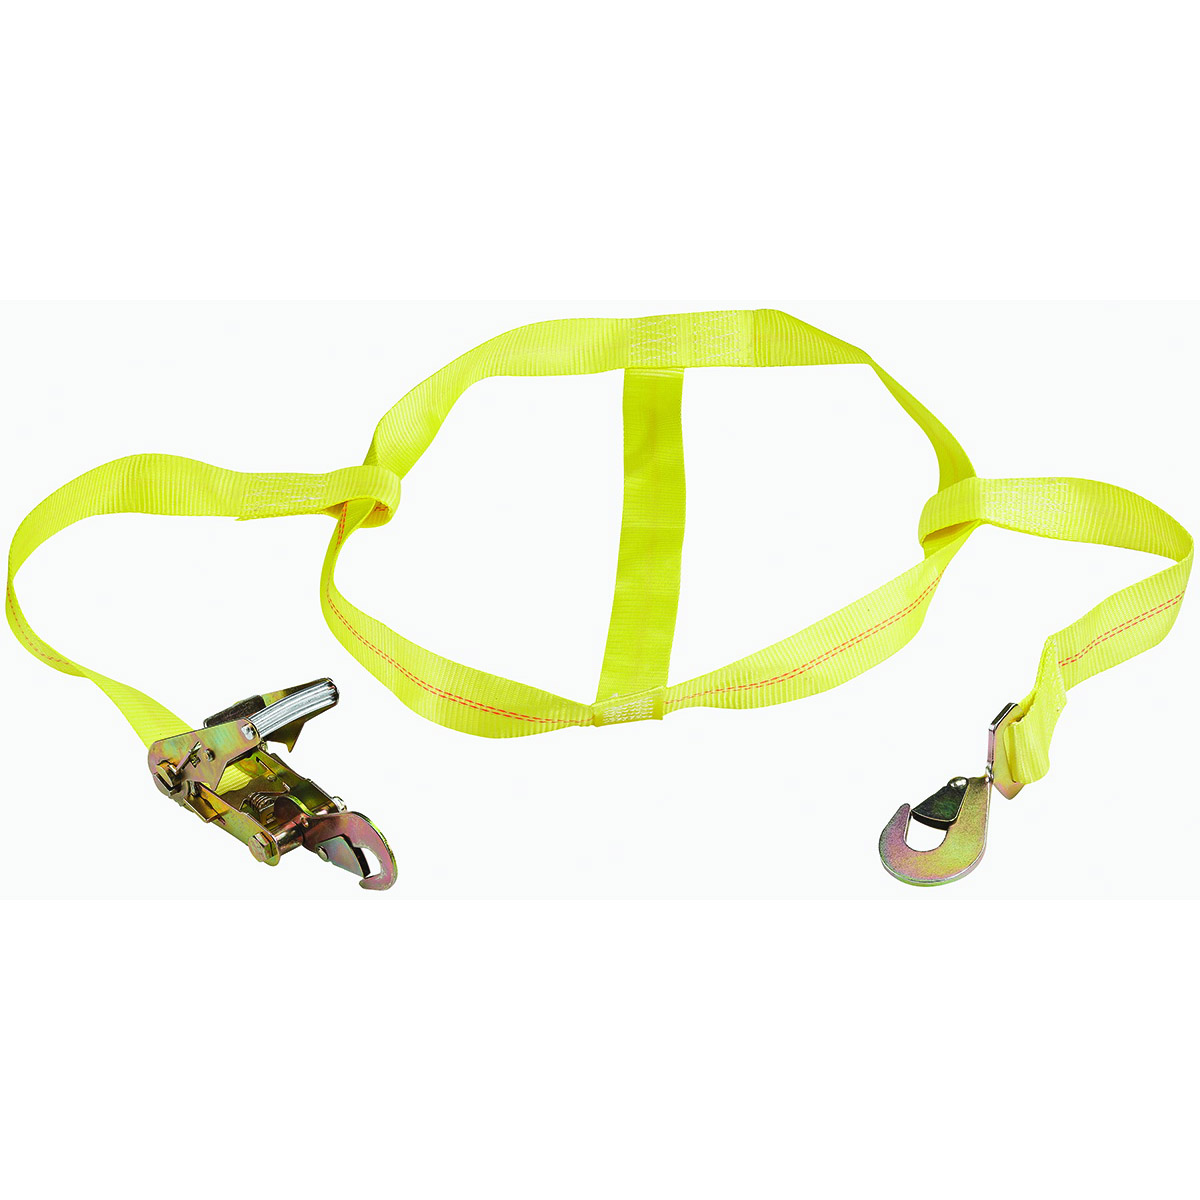 Picture of ProSource FH4016 Tie-Down, 2 in W, 14-7/8 in L, Polyester Webbing, Metal Ratchet, Yellow, 3333 lb